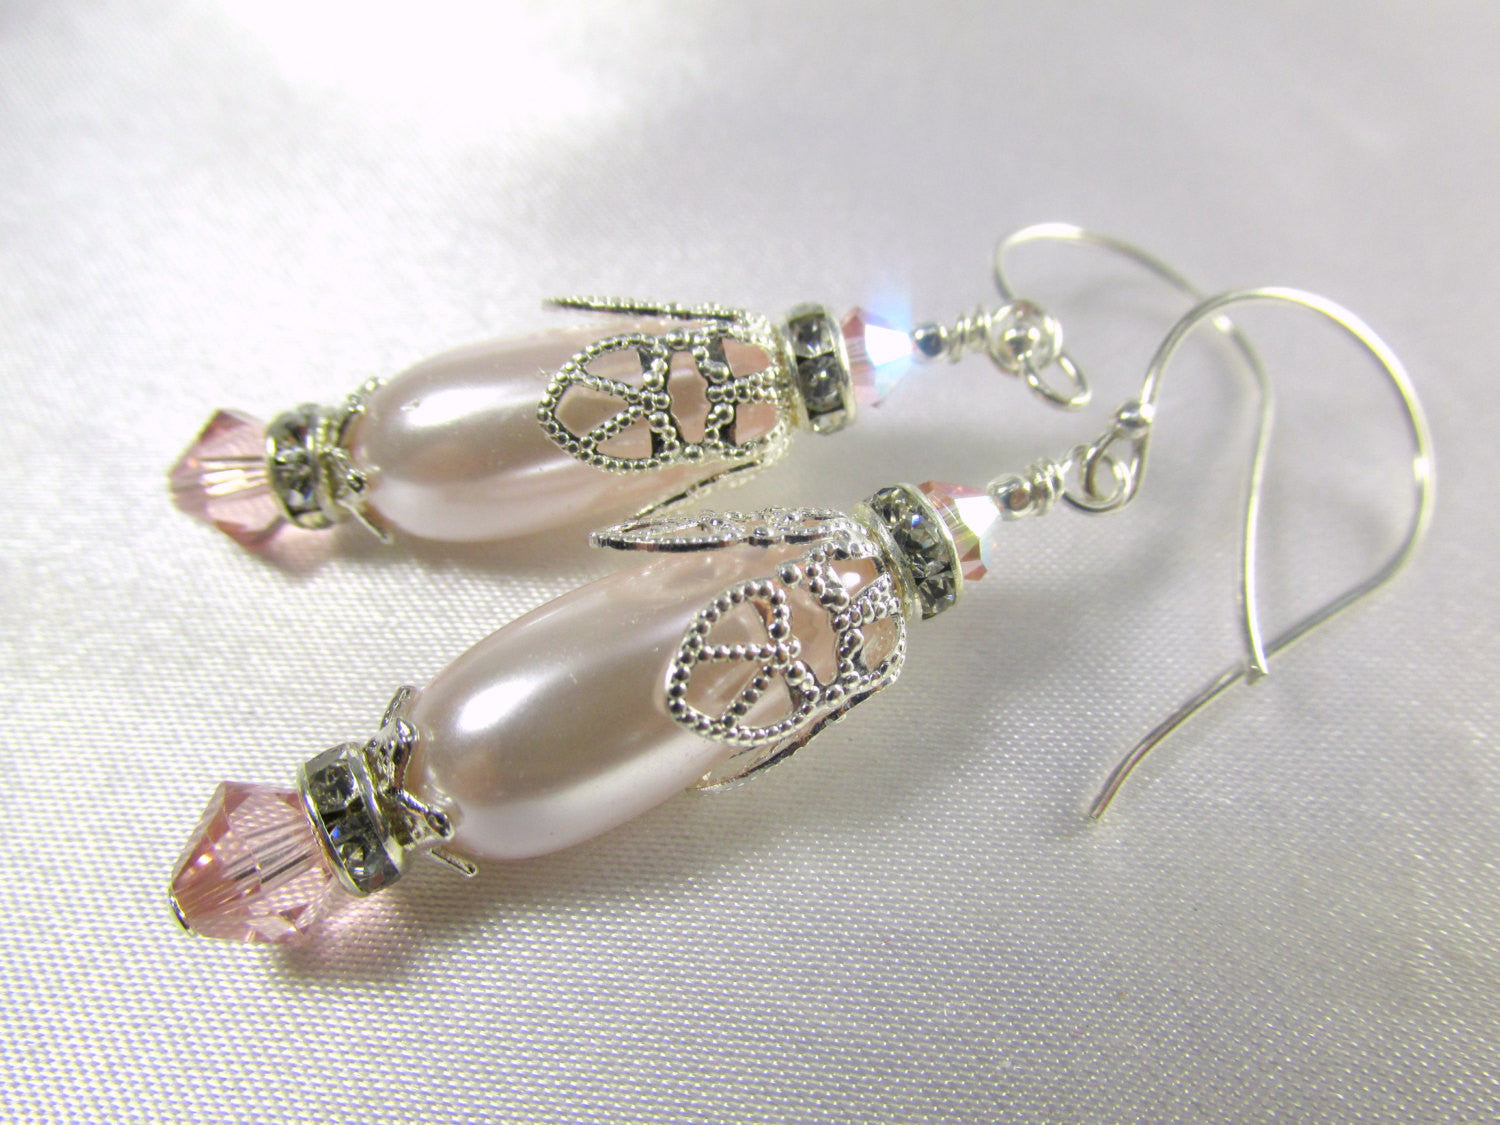 Vintage Pink Pale Blush Pink Pearl and Silver Pearl Teardrop Bridal or Bridesmaid Earrings on Sterling Silver Wires - Odyssey Creations